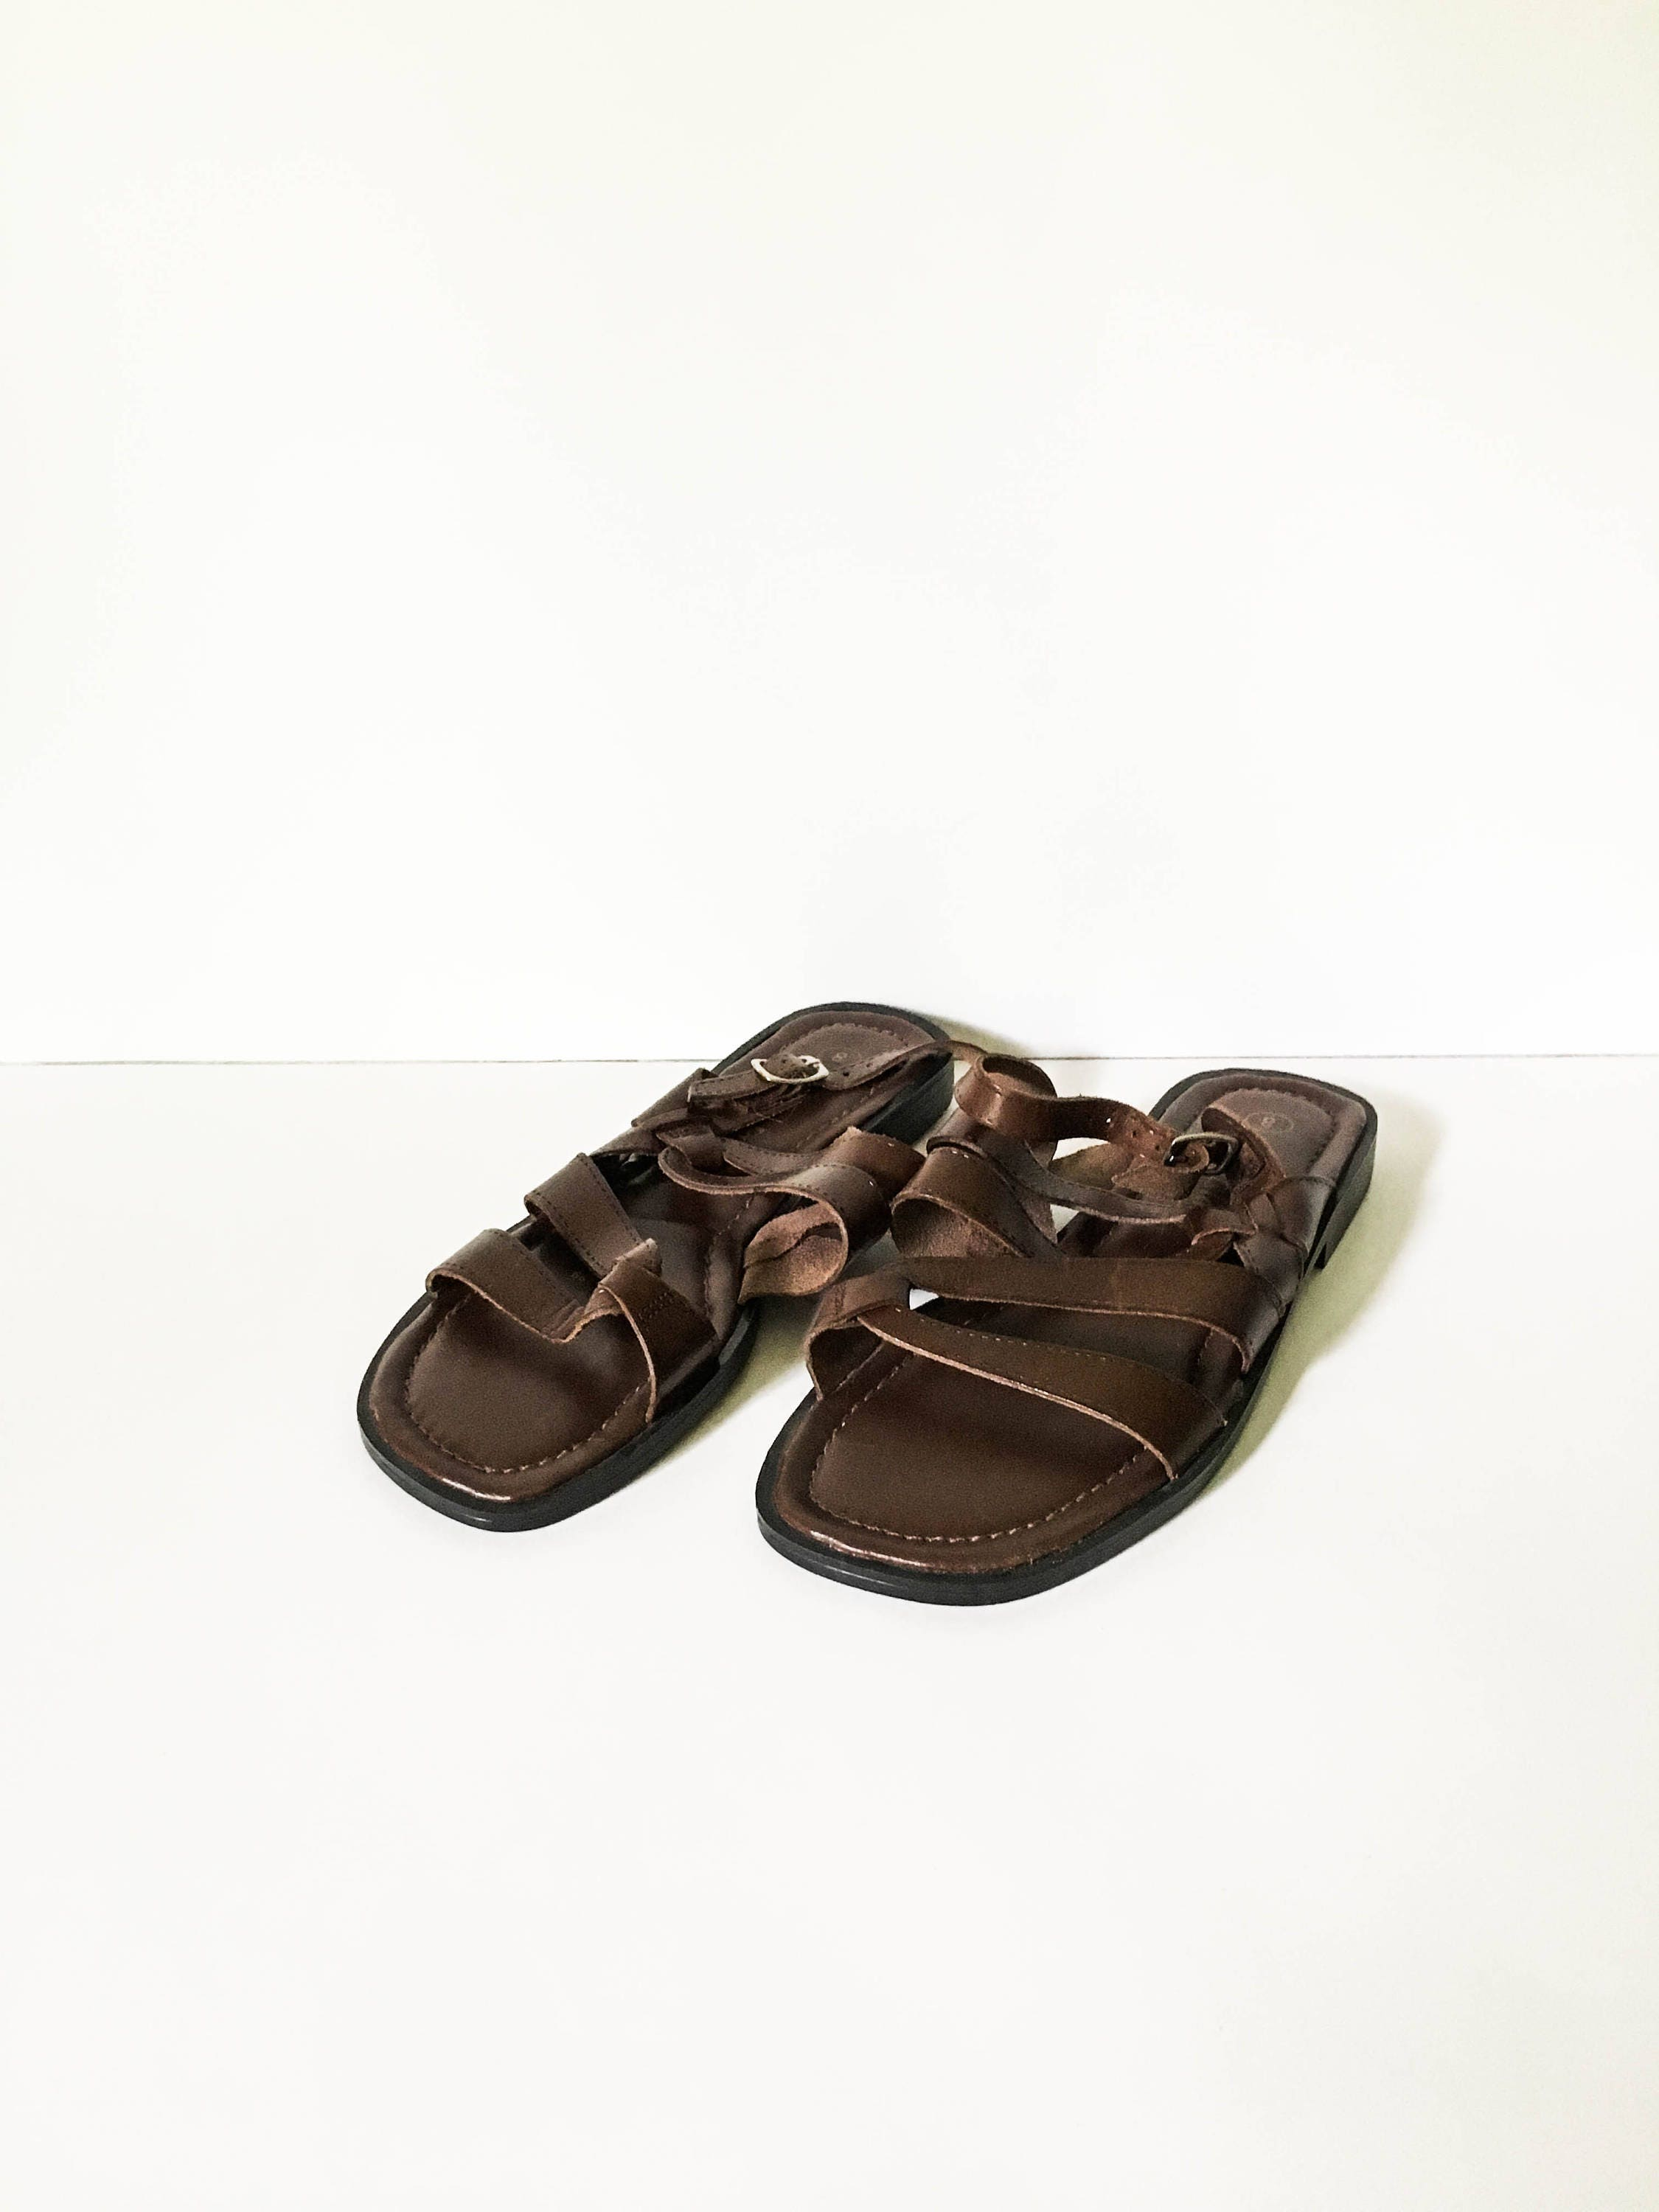 Leather strappy sandal sz 8 leather sandals minimalist zoom nvjuhfo Image collections